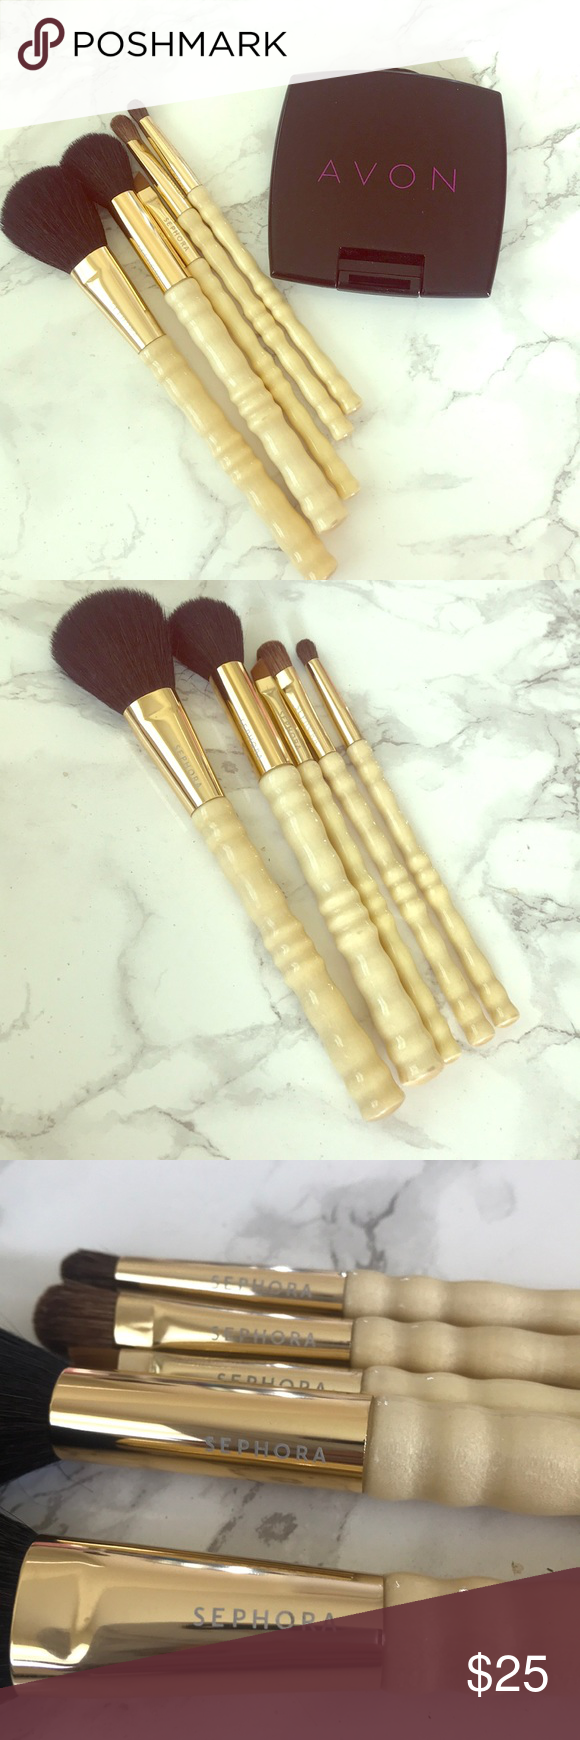 Sephora travel brush set 5 Sephora travel brushes 1 Avon